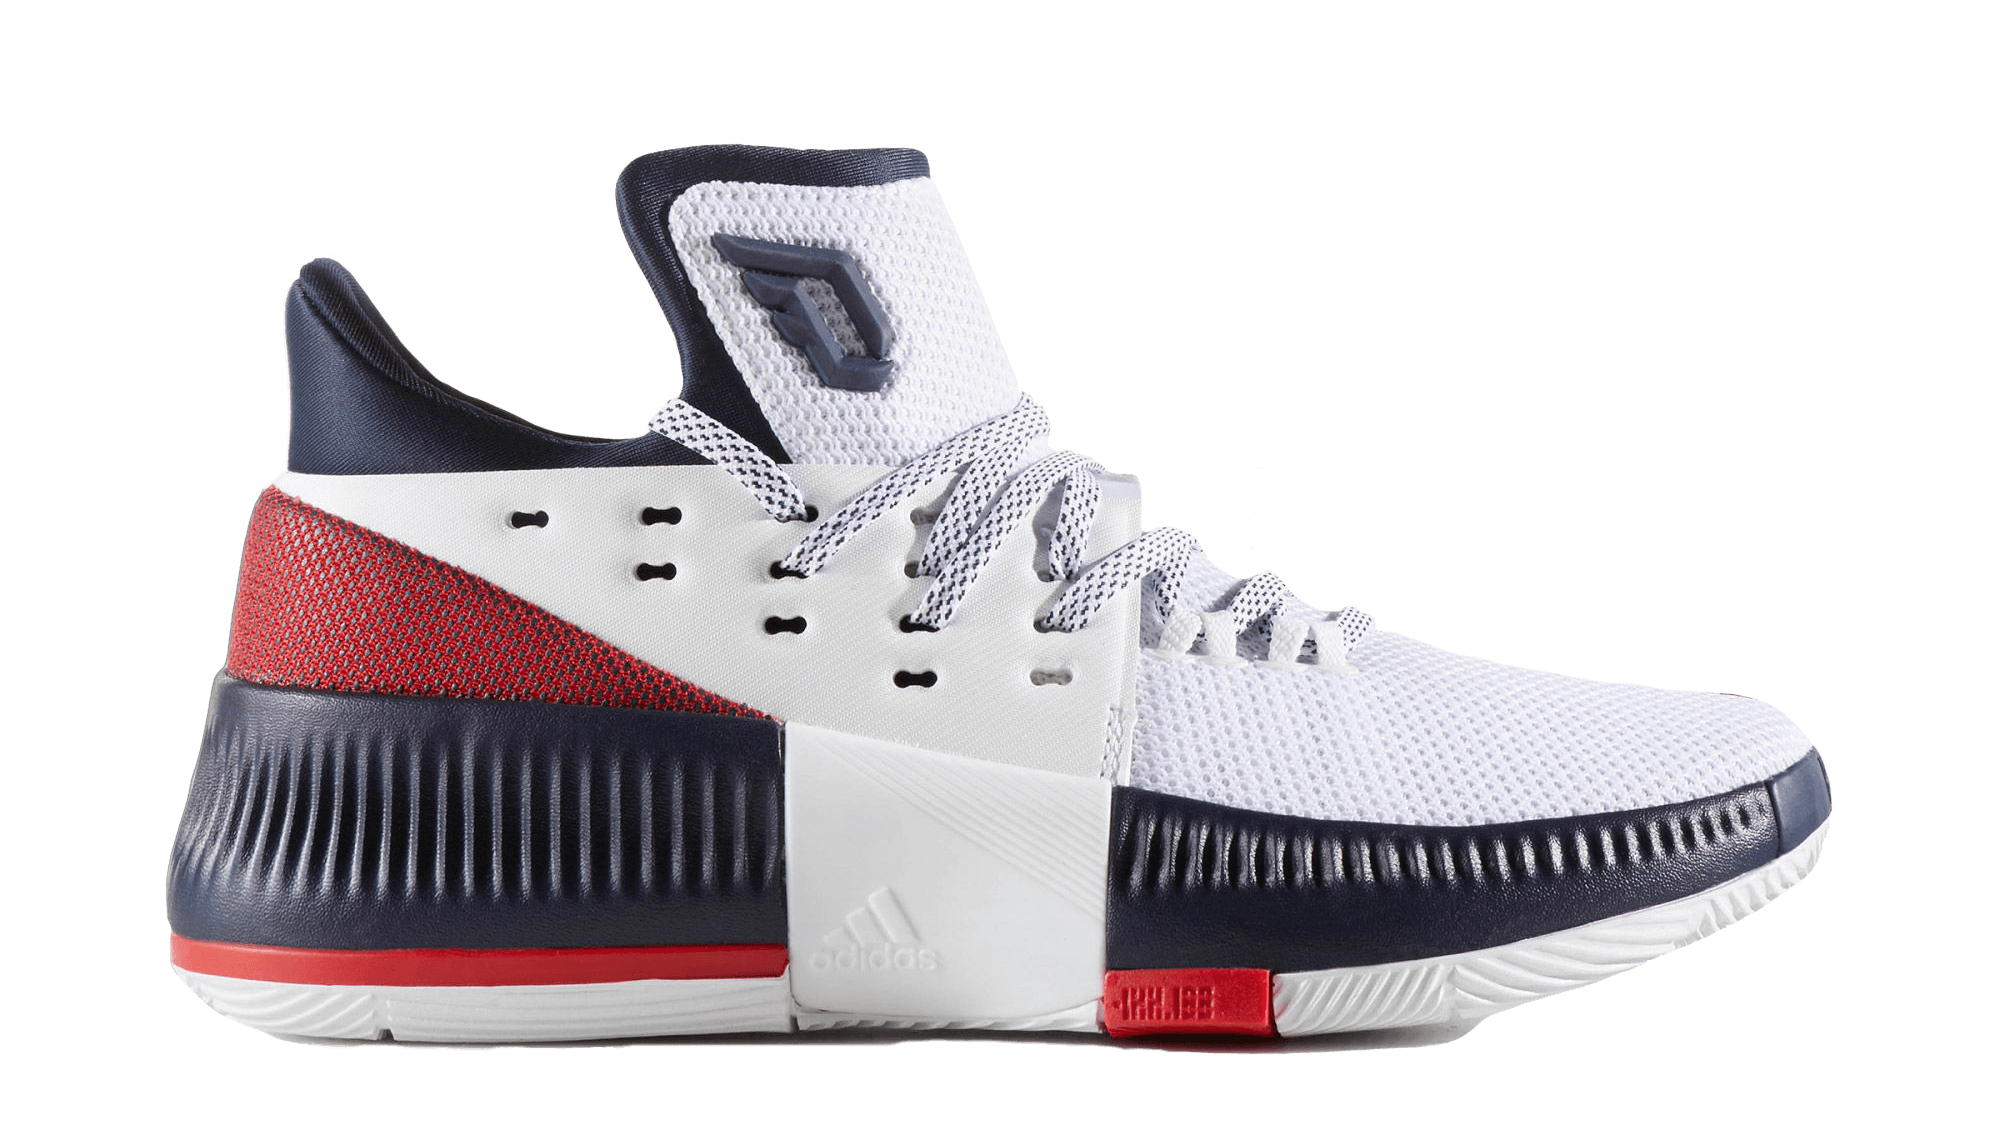 new product 8eb3f 449e7 Adidas Dame 3 Review